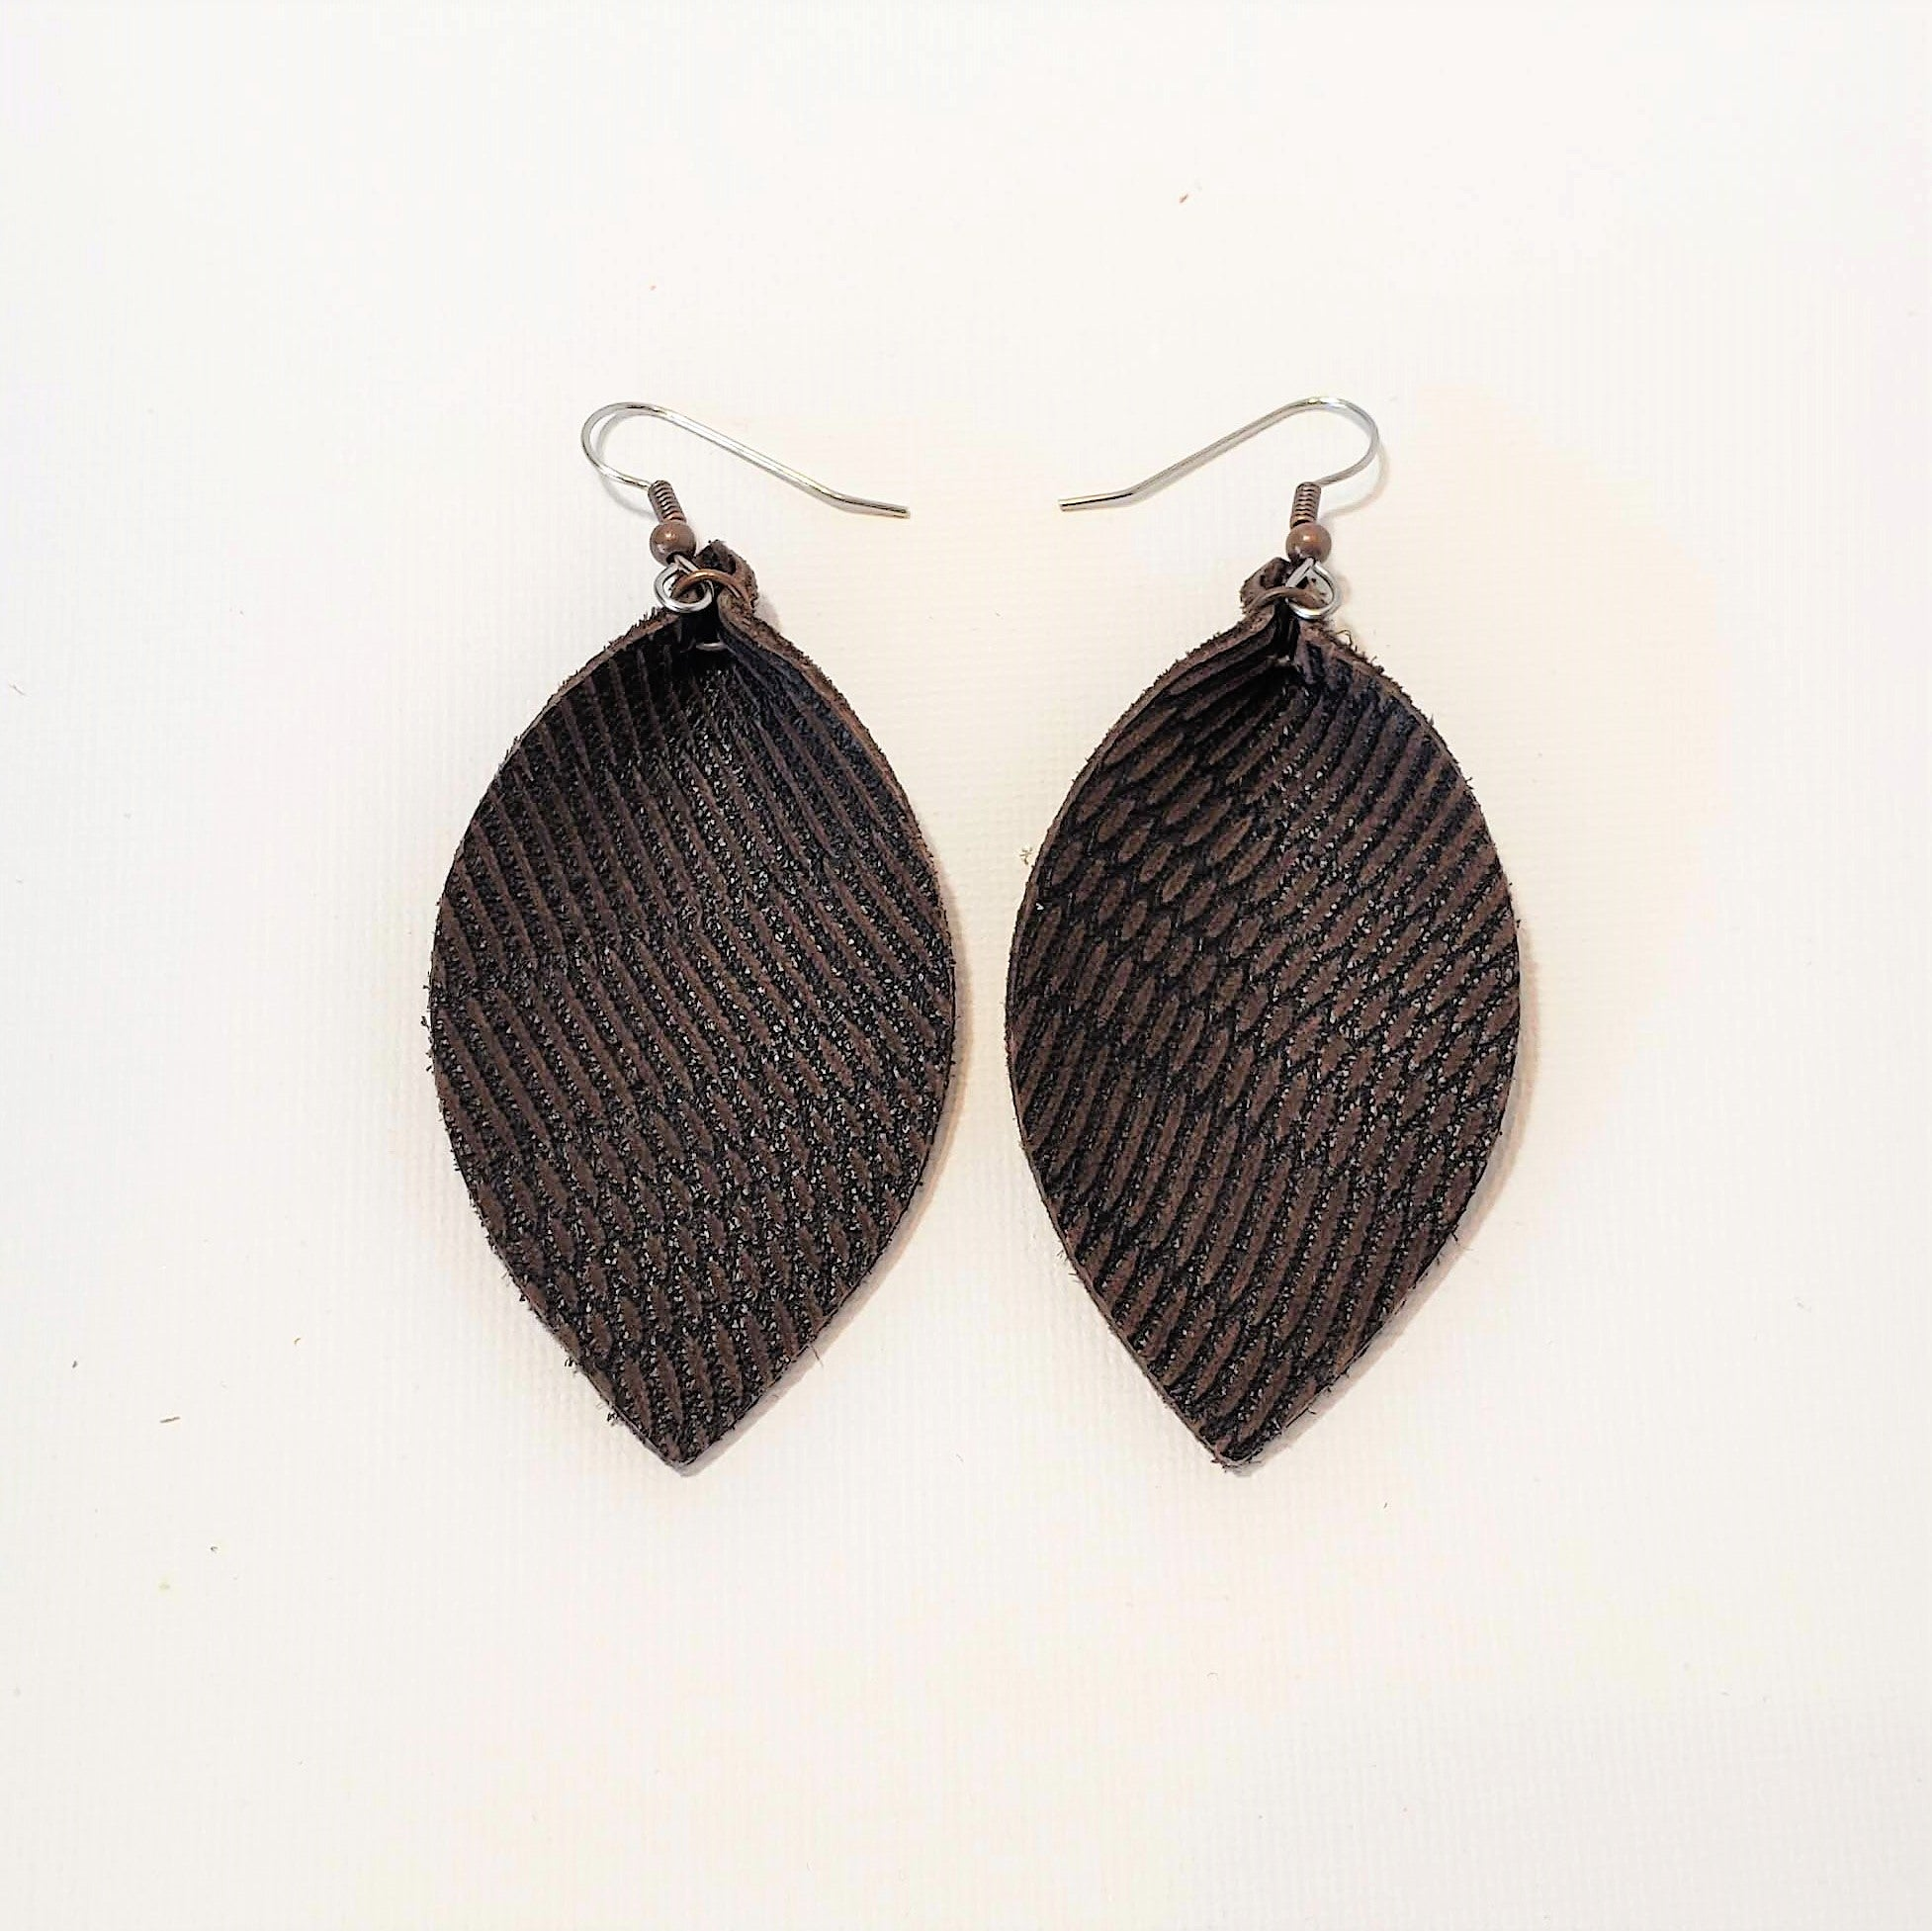 Dark Brown Feather / Leather Leaf Earrings / Joanna Gaines Earrings / Magnolia / Statement Earrings